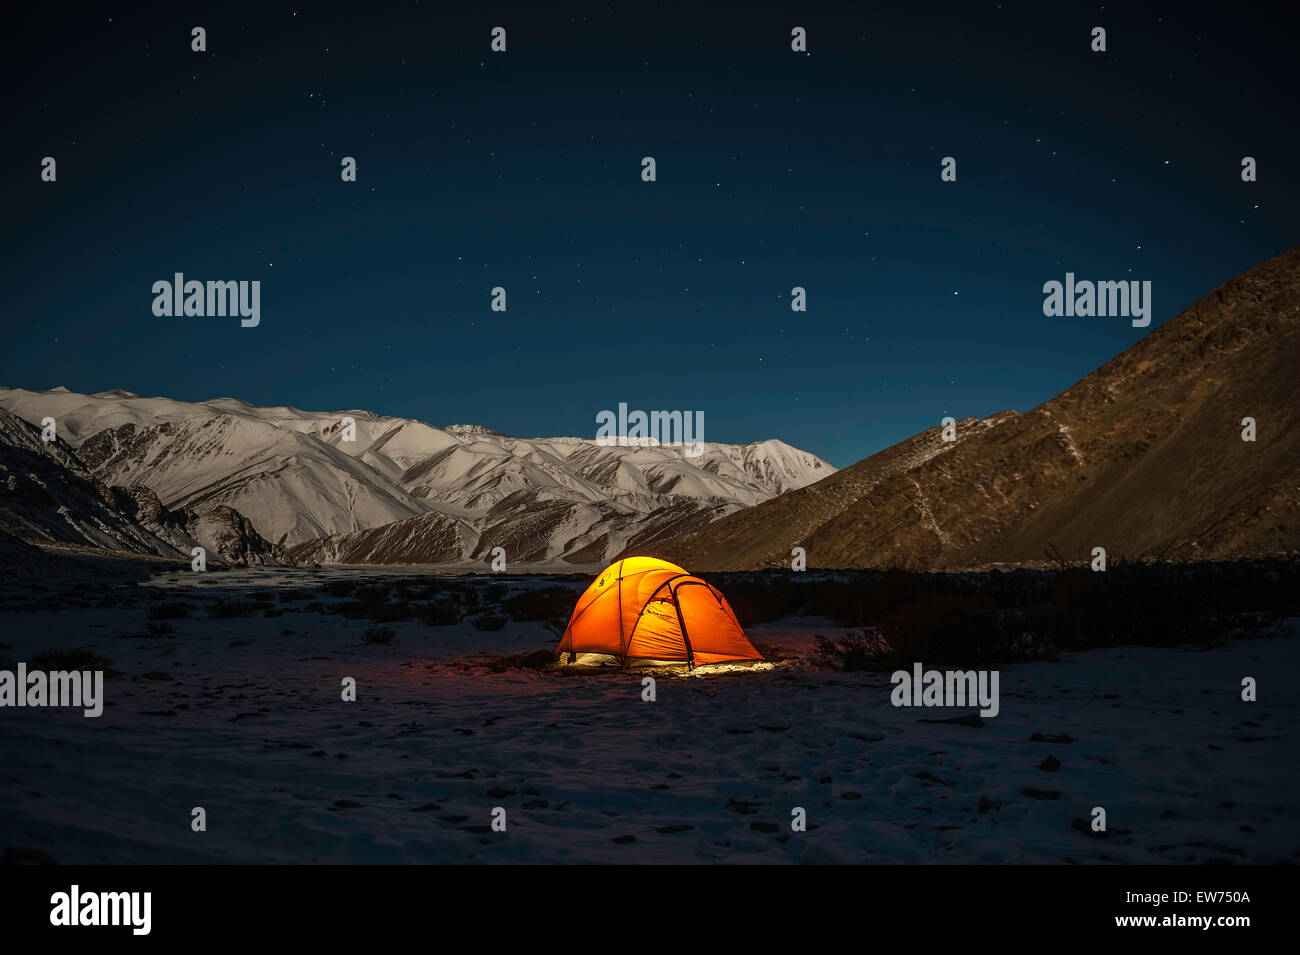 Camping at night in Changthang Stock Photo